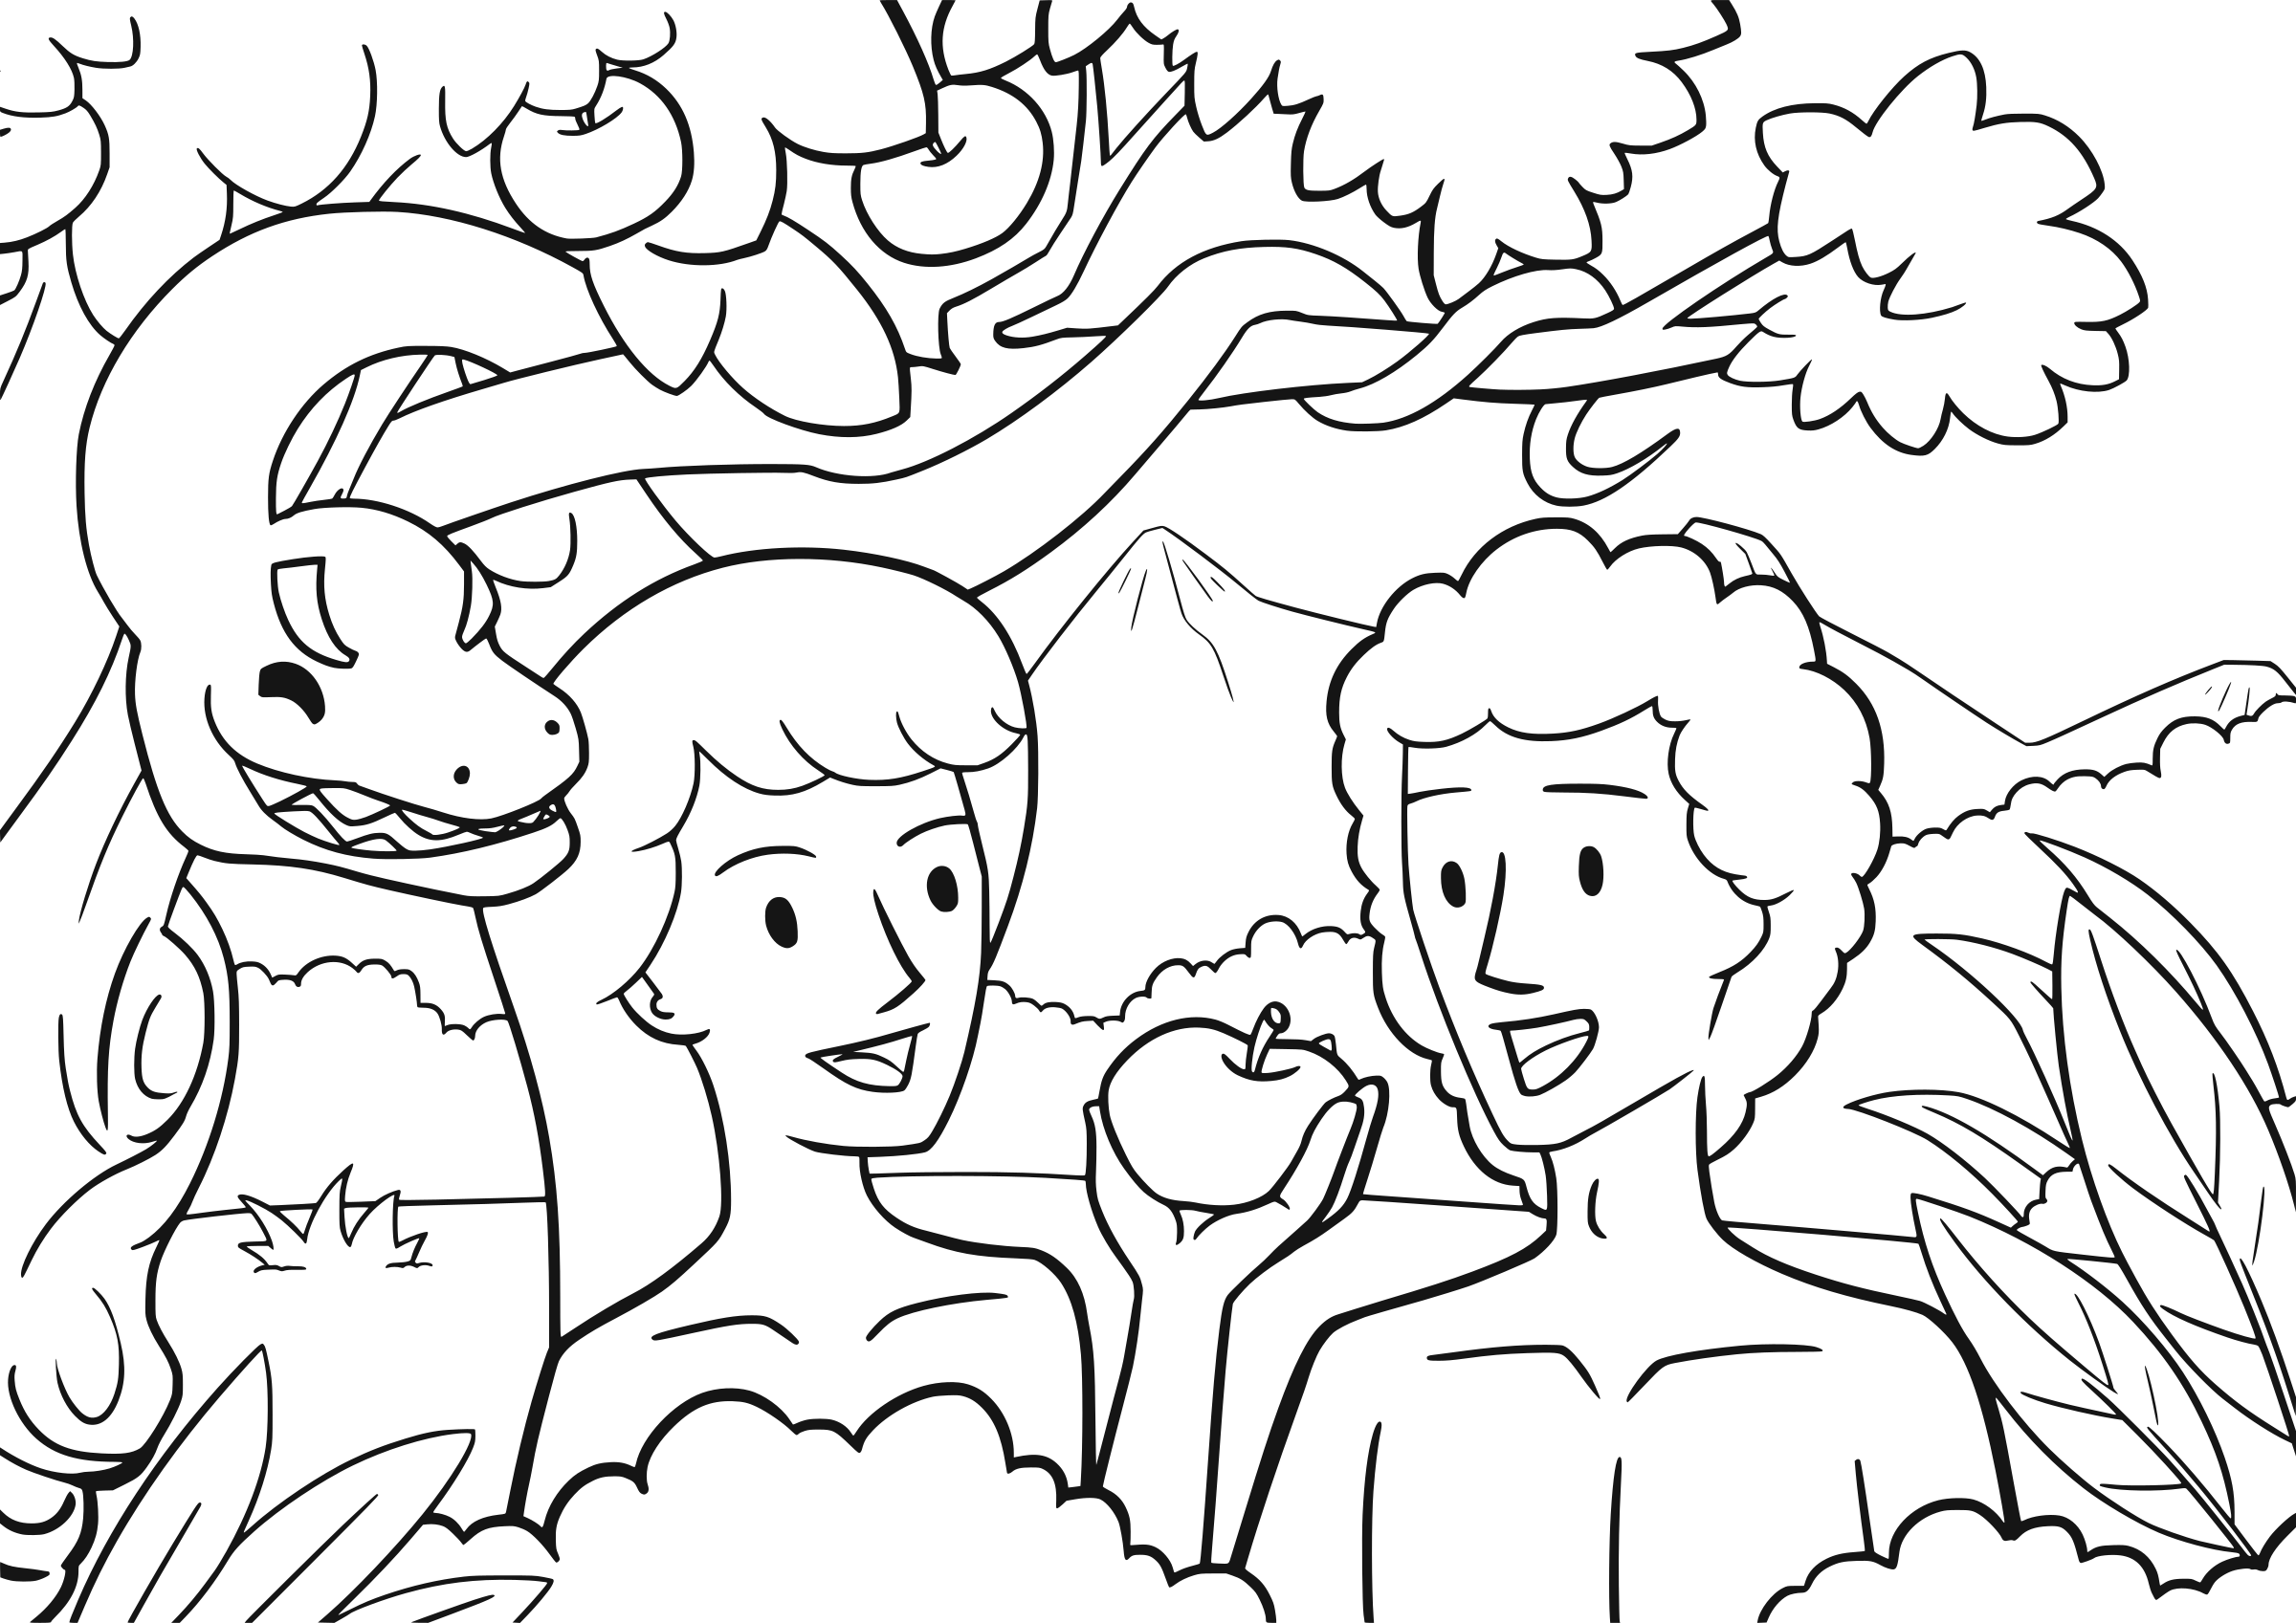 coloring page adam and eve adam and eve coloring lesson kids coloring page page and coloring eve adam